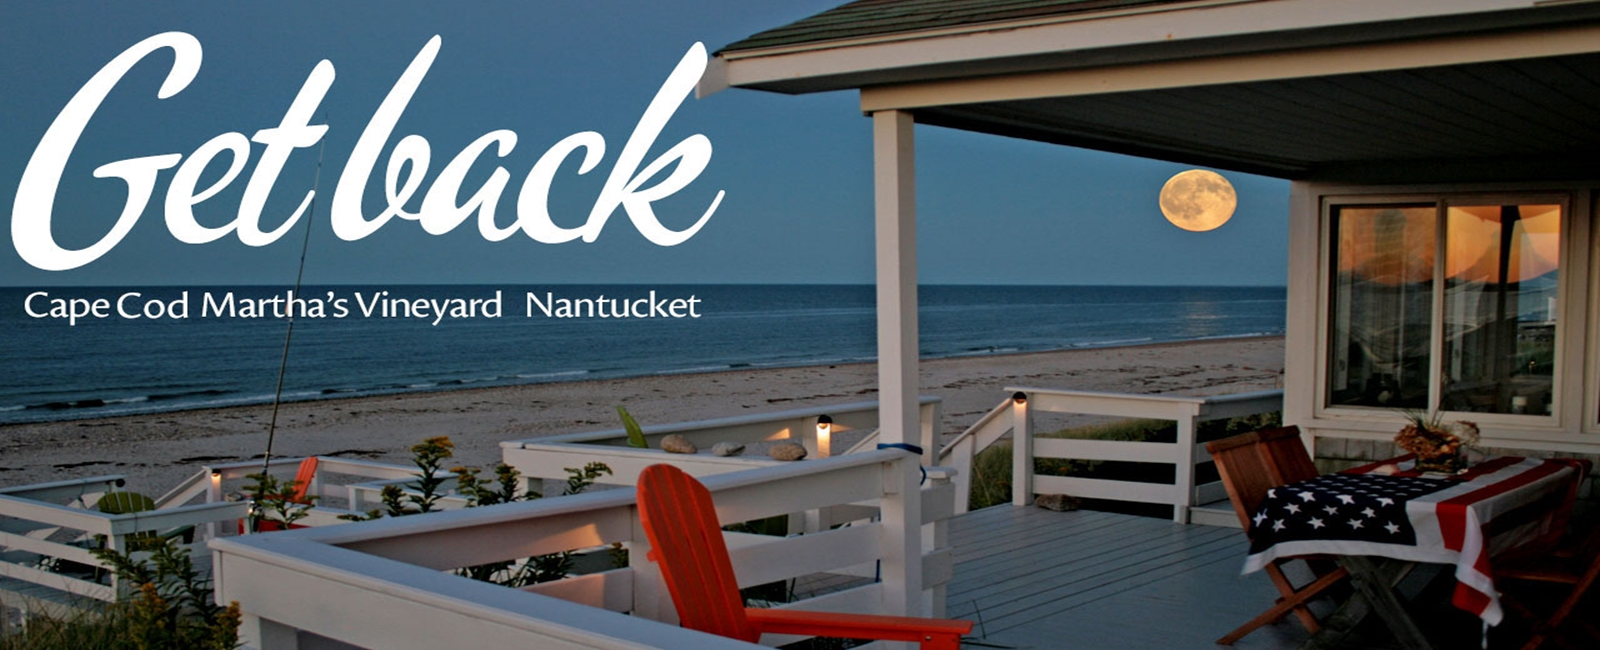 Enjoy our GetBacktoCapeCod video that highlights the many reasons we all plan to Get Back to the Cape, Martha's Vineyard and Nantucket as soon as possible.